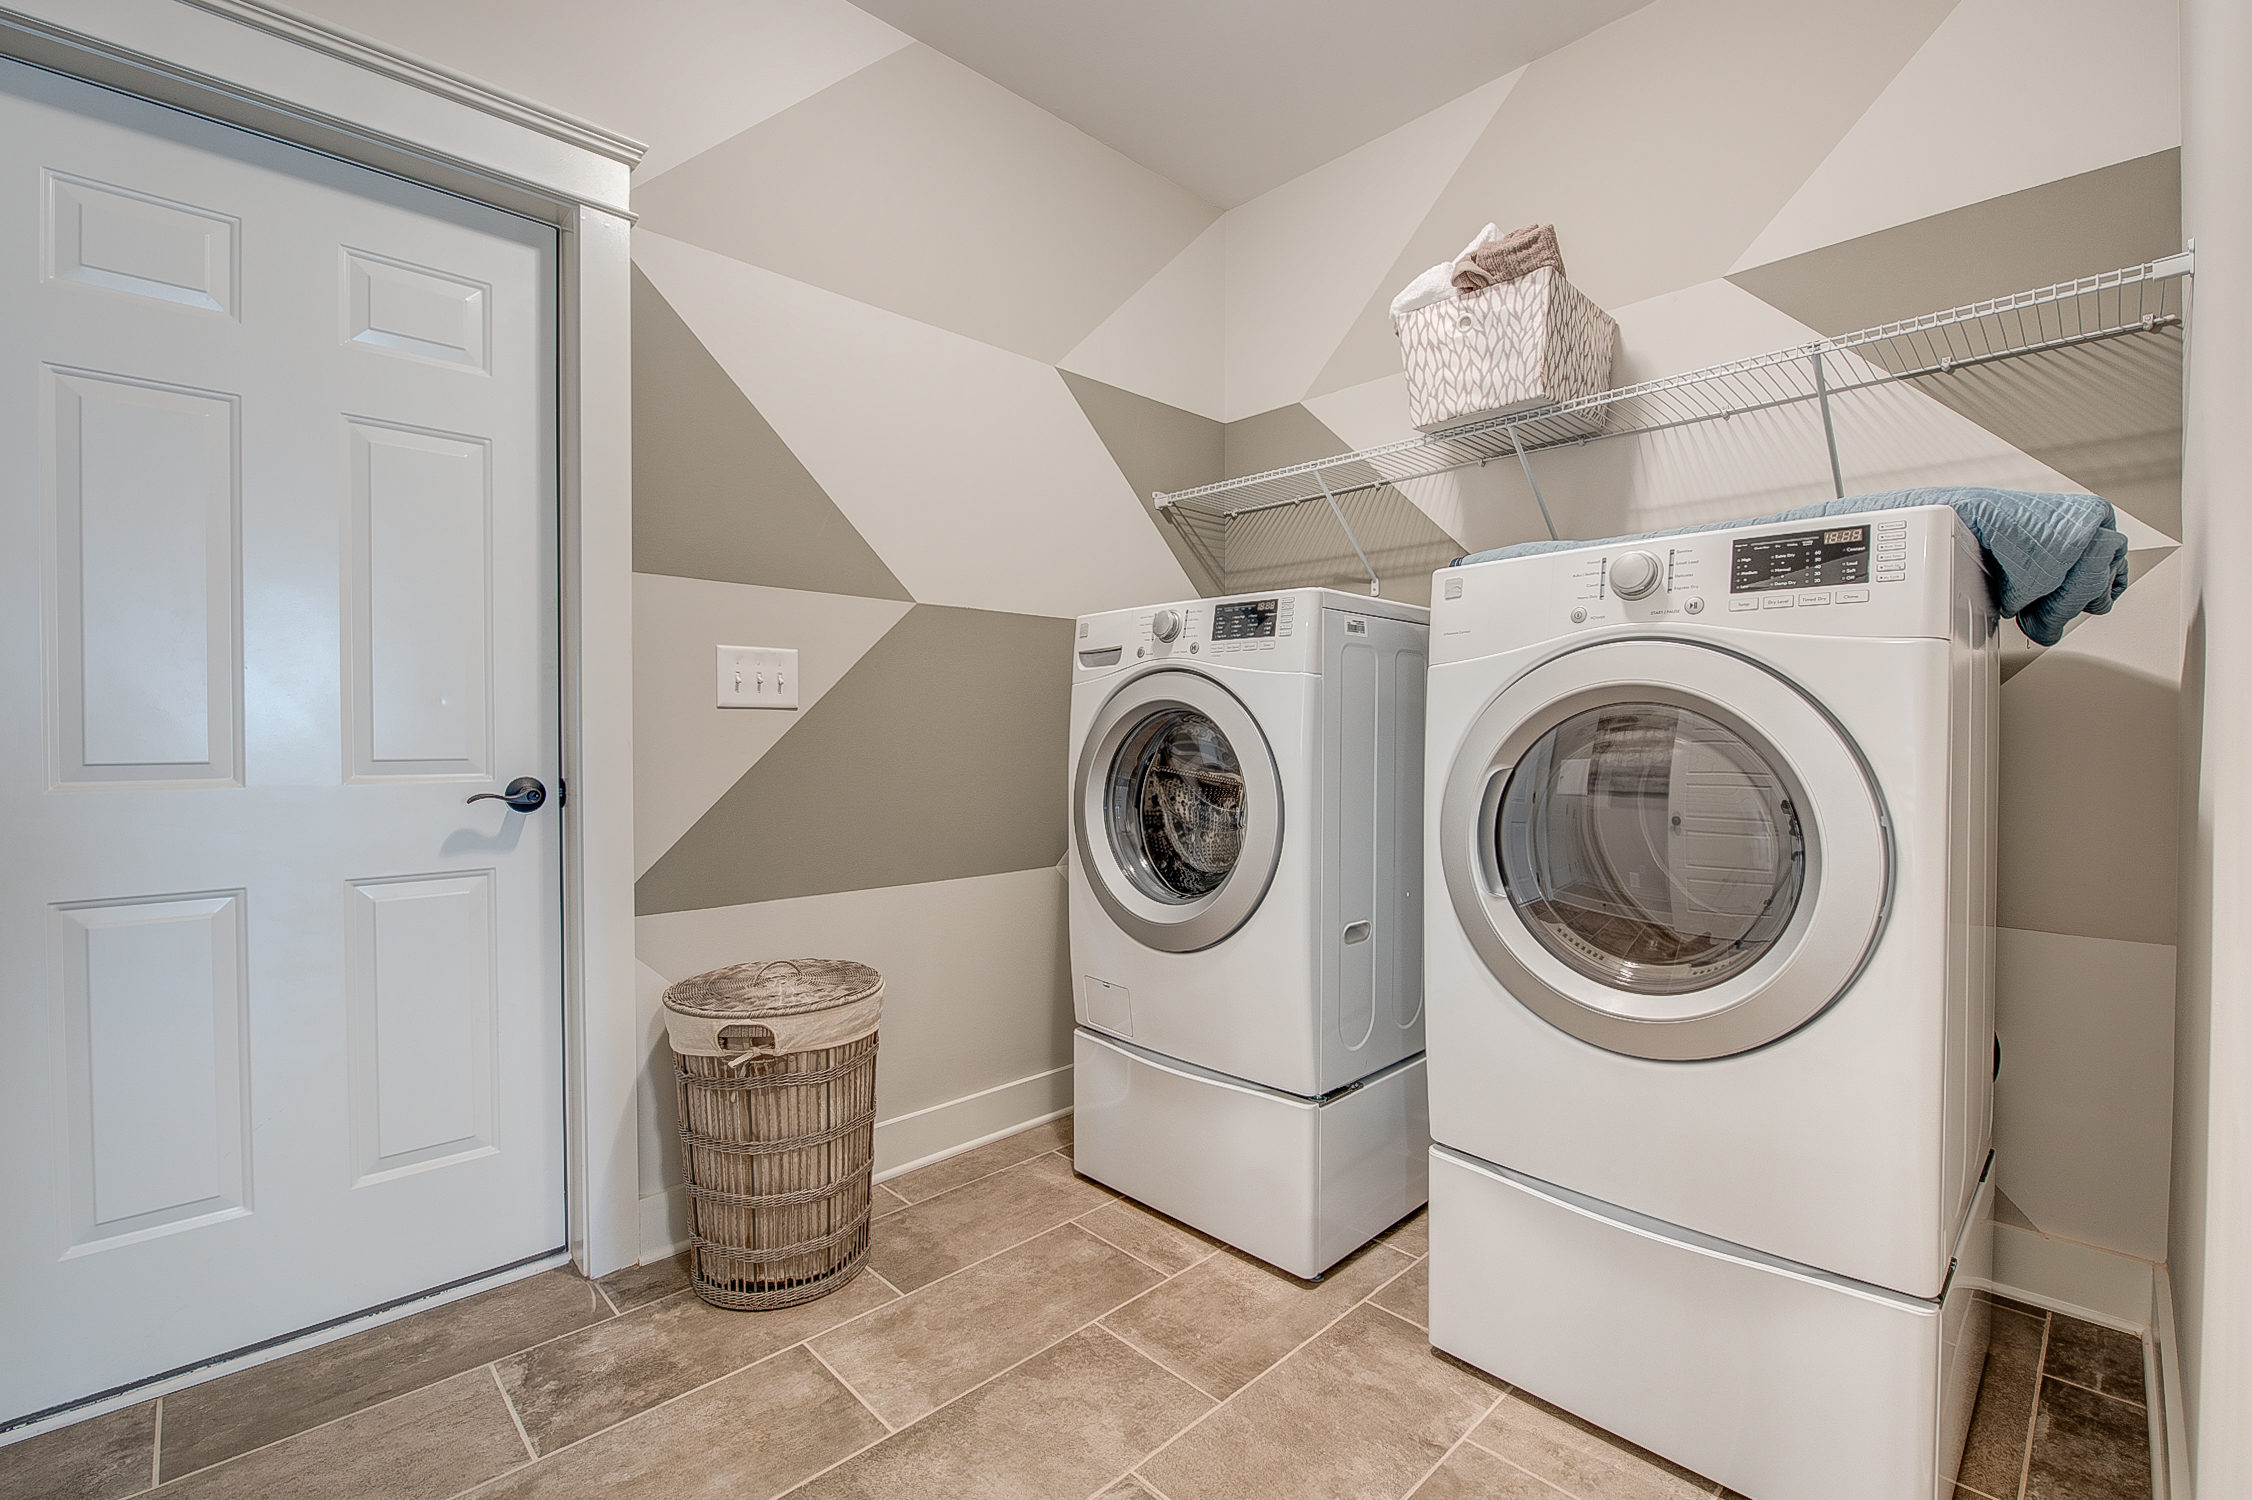 104-bushney-loop-mooresville-print-031-25-laundry-room-2252x1500-300dpi_33628714351_o.jpg